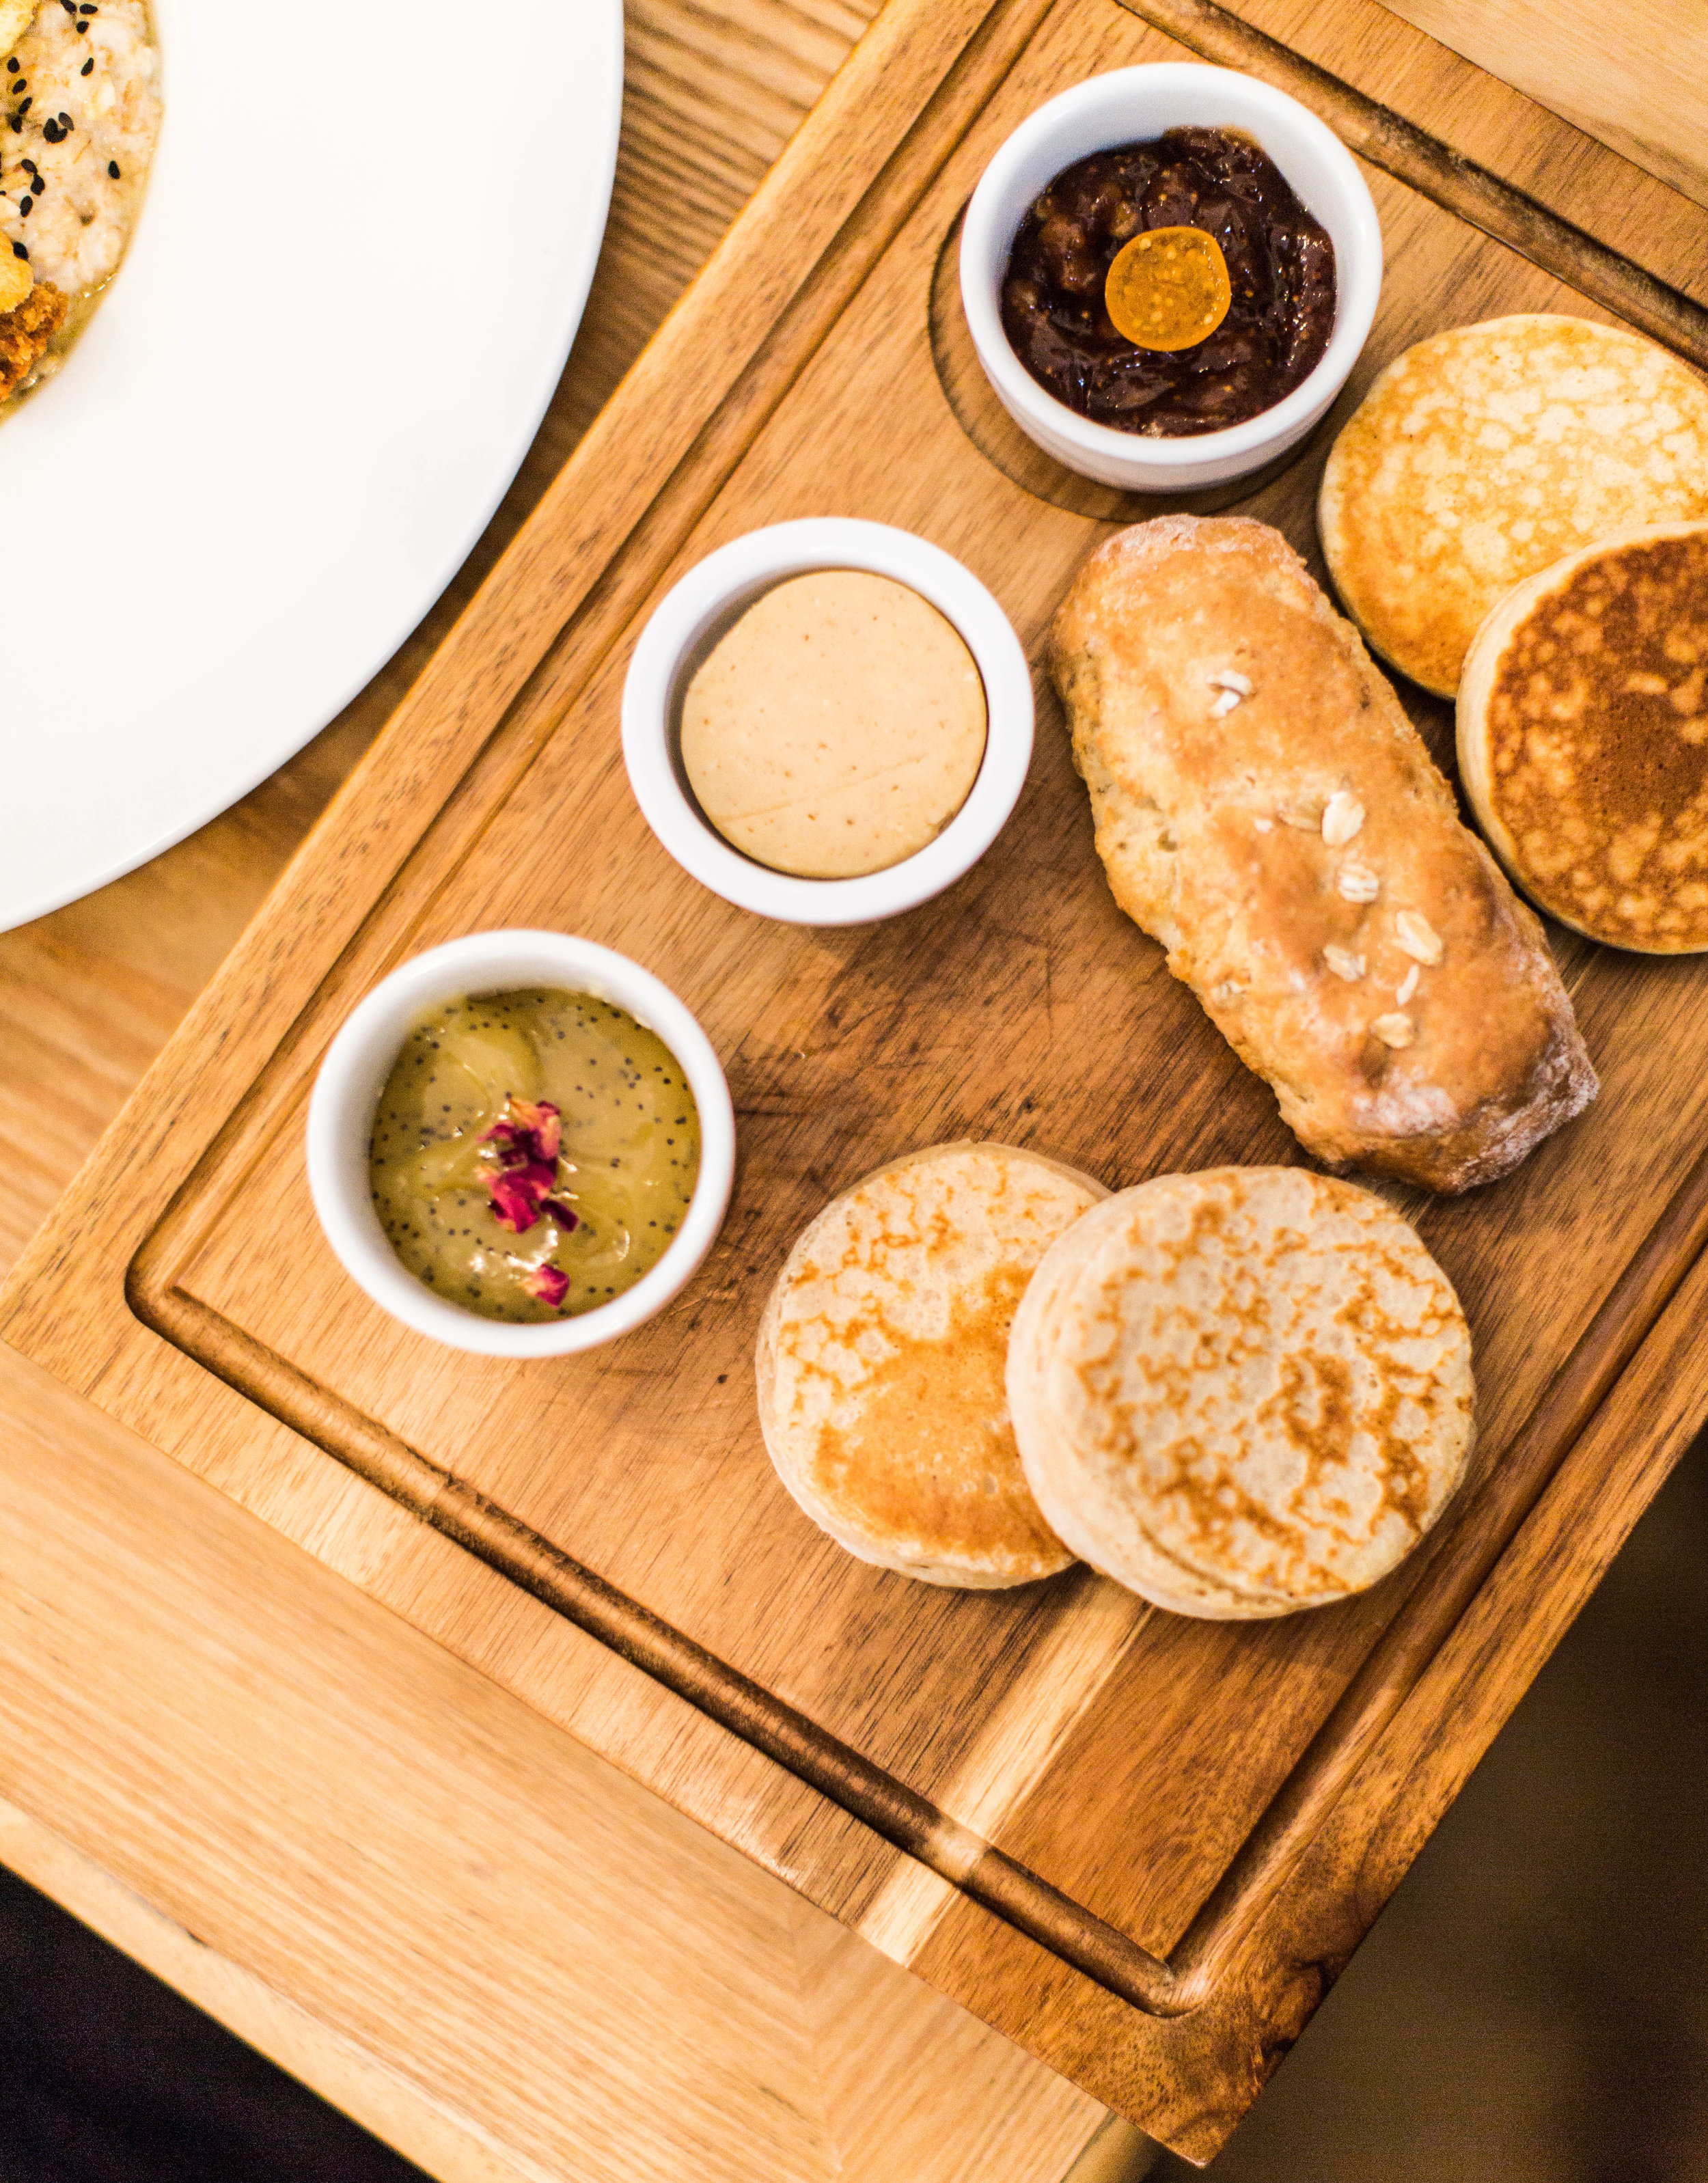 The pikelets, drop scones and oat bannock, alongside lemon and poppyseed curd, that amazing spiced maple butter, and fig and orange marmalade.